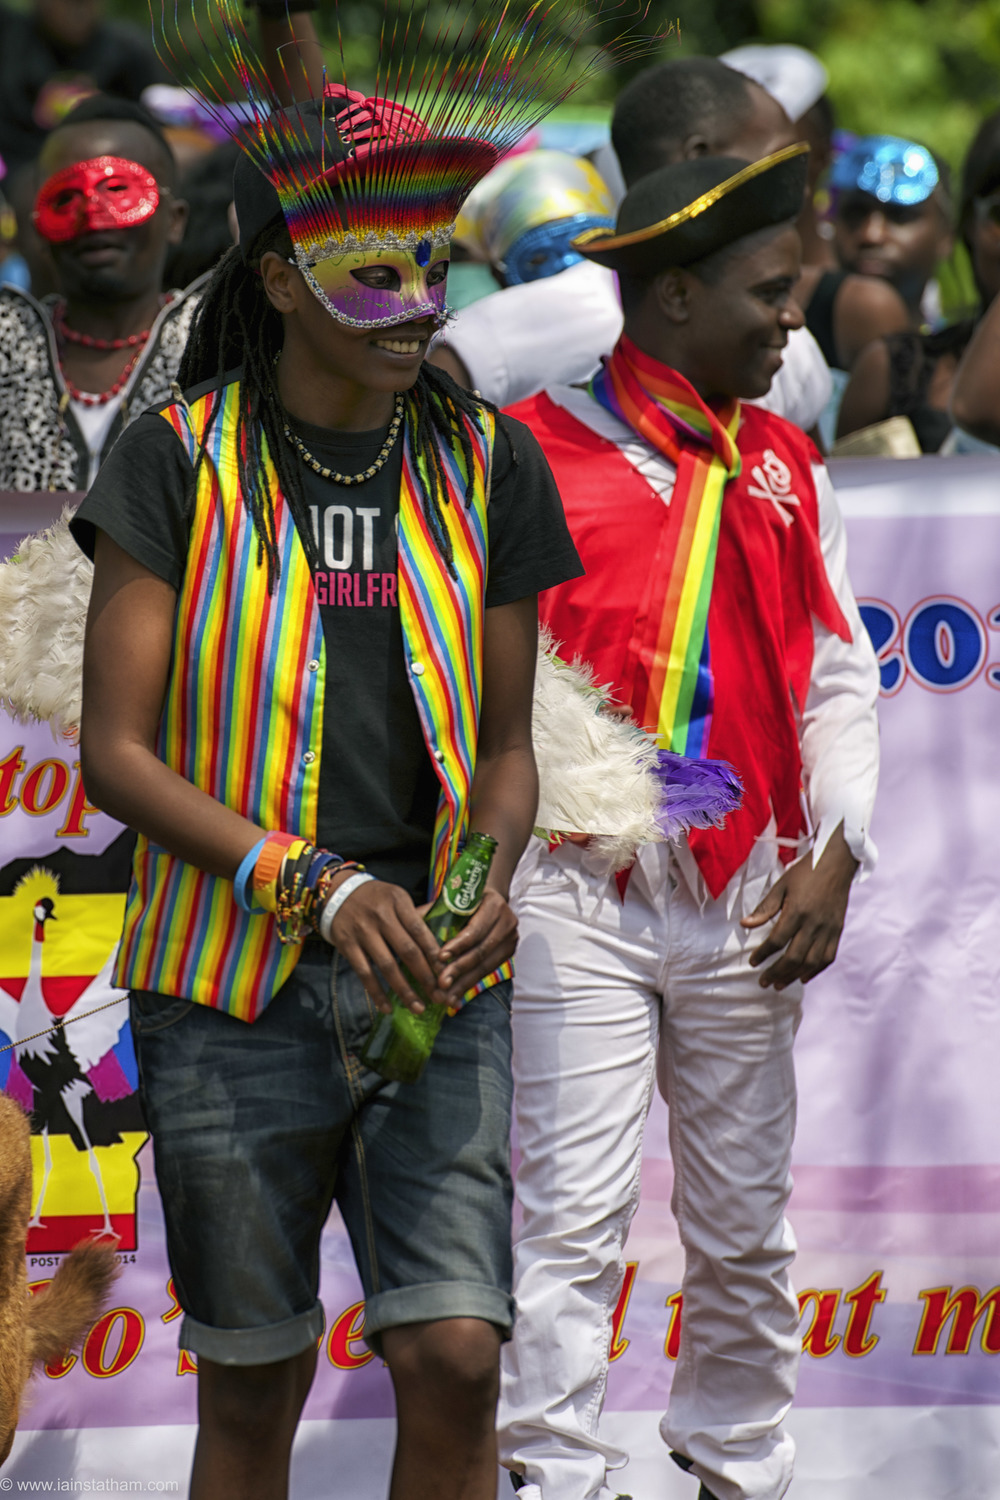 ug - entebbe - pride - colour-18.jpg